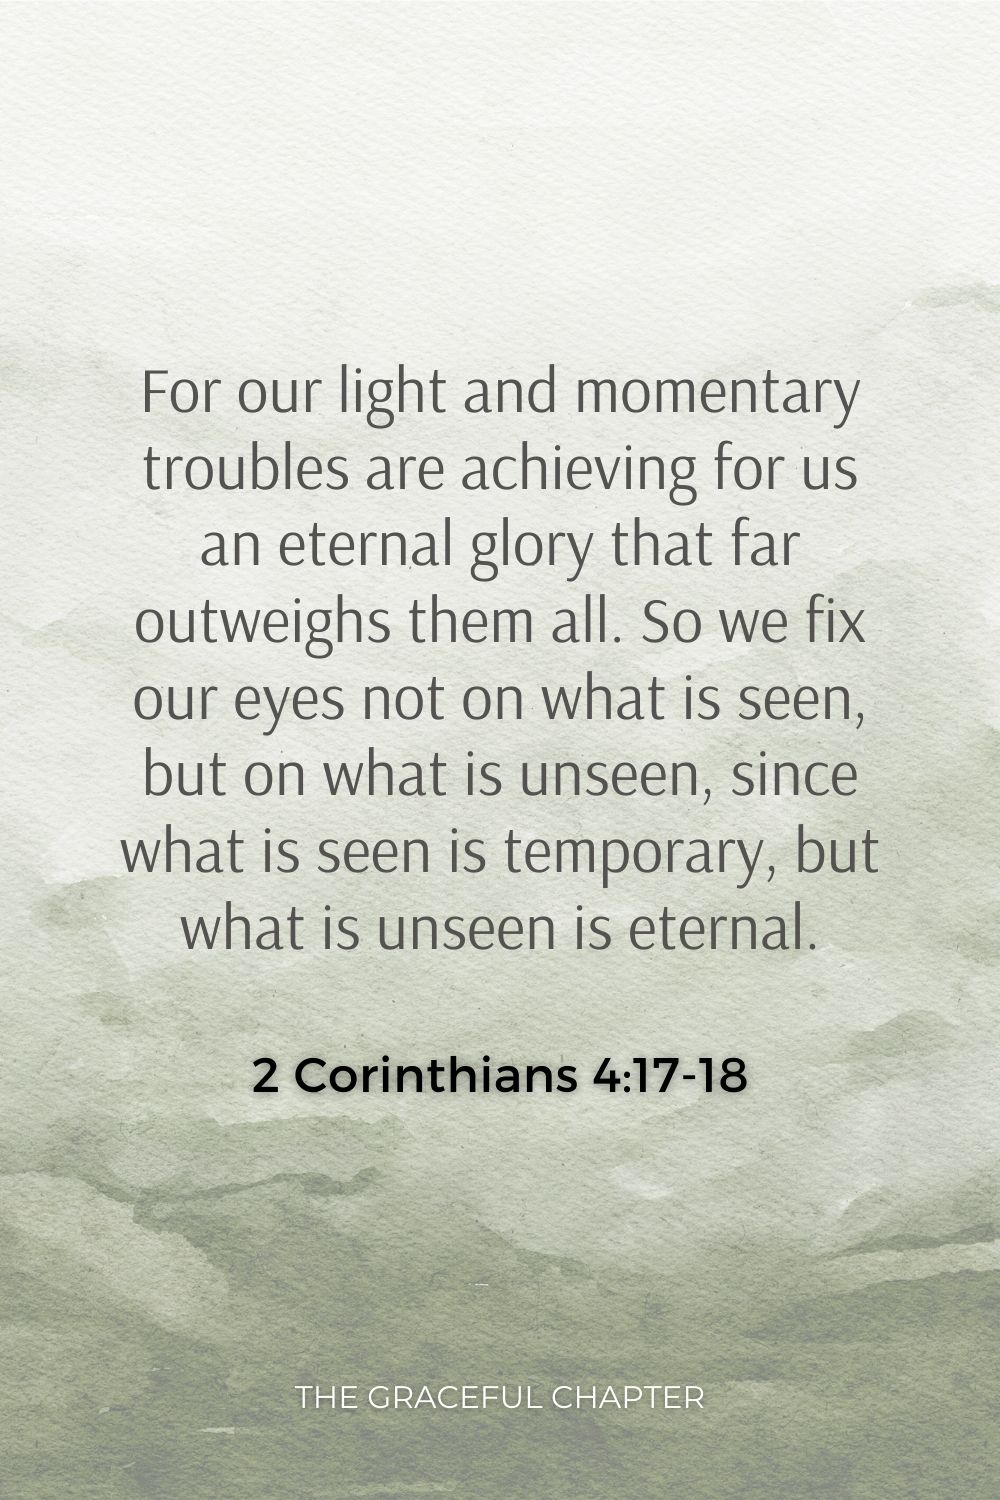 For our light and momentary troubles are achieving for us an eternal glory that far outweighs them all. So we fix our eyes not on what is seen, but on what is unseen, since what is seen is temporary, but what is unseen is eternal. 2 Corinthians 4:17-18